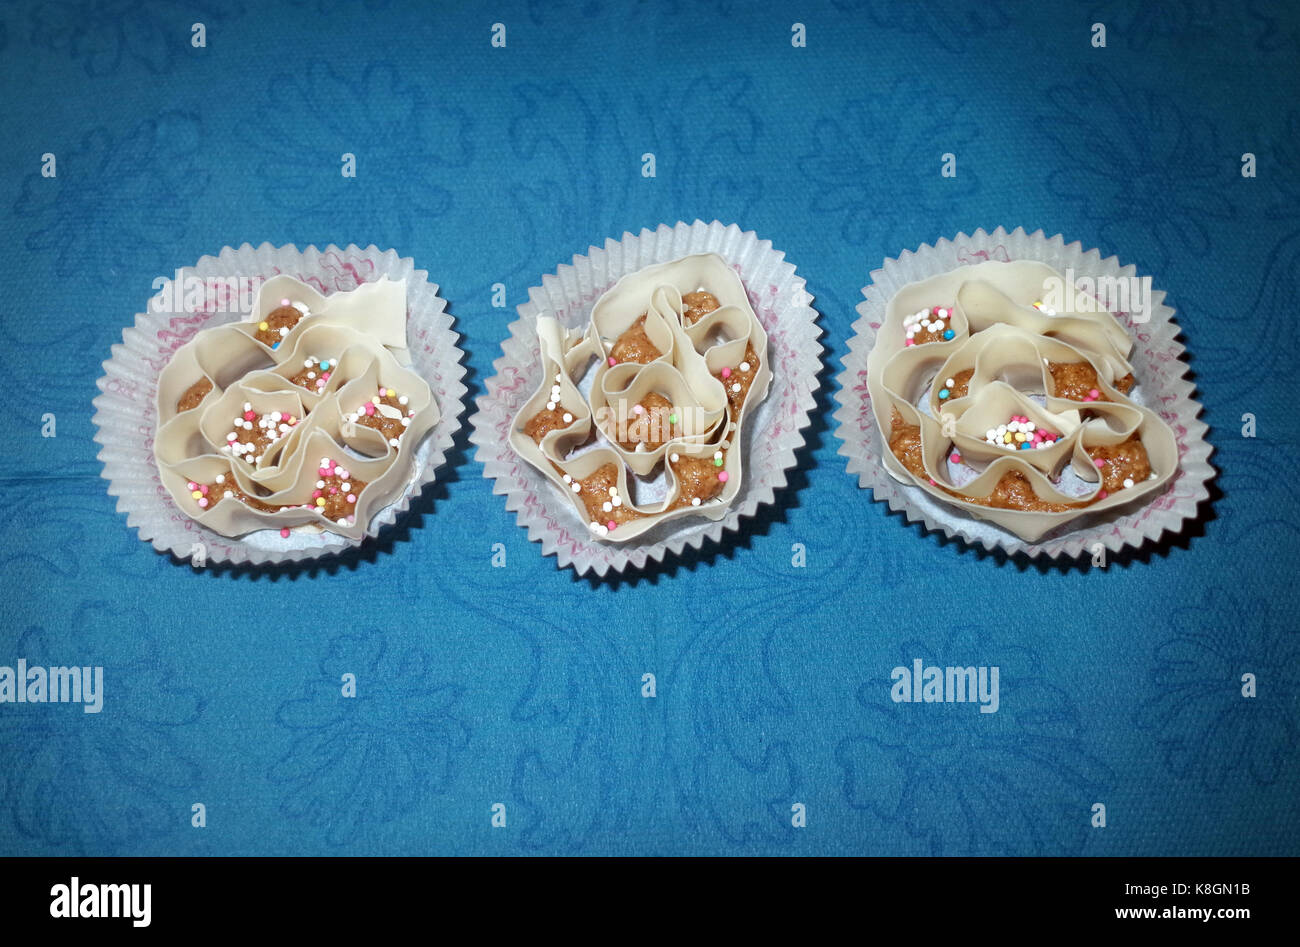 Caschettes: Sardinian typical dessert - Stock Image